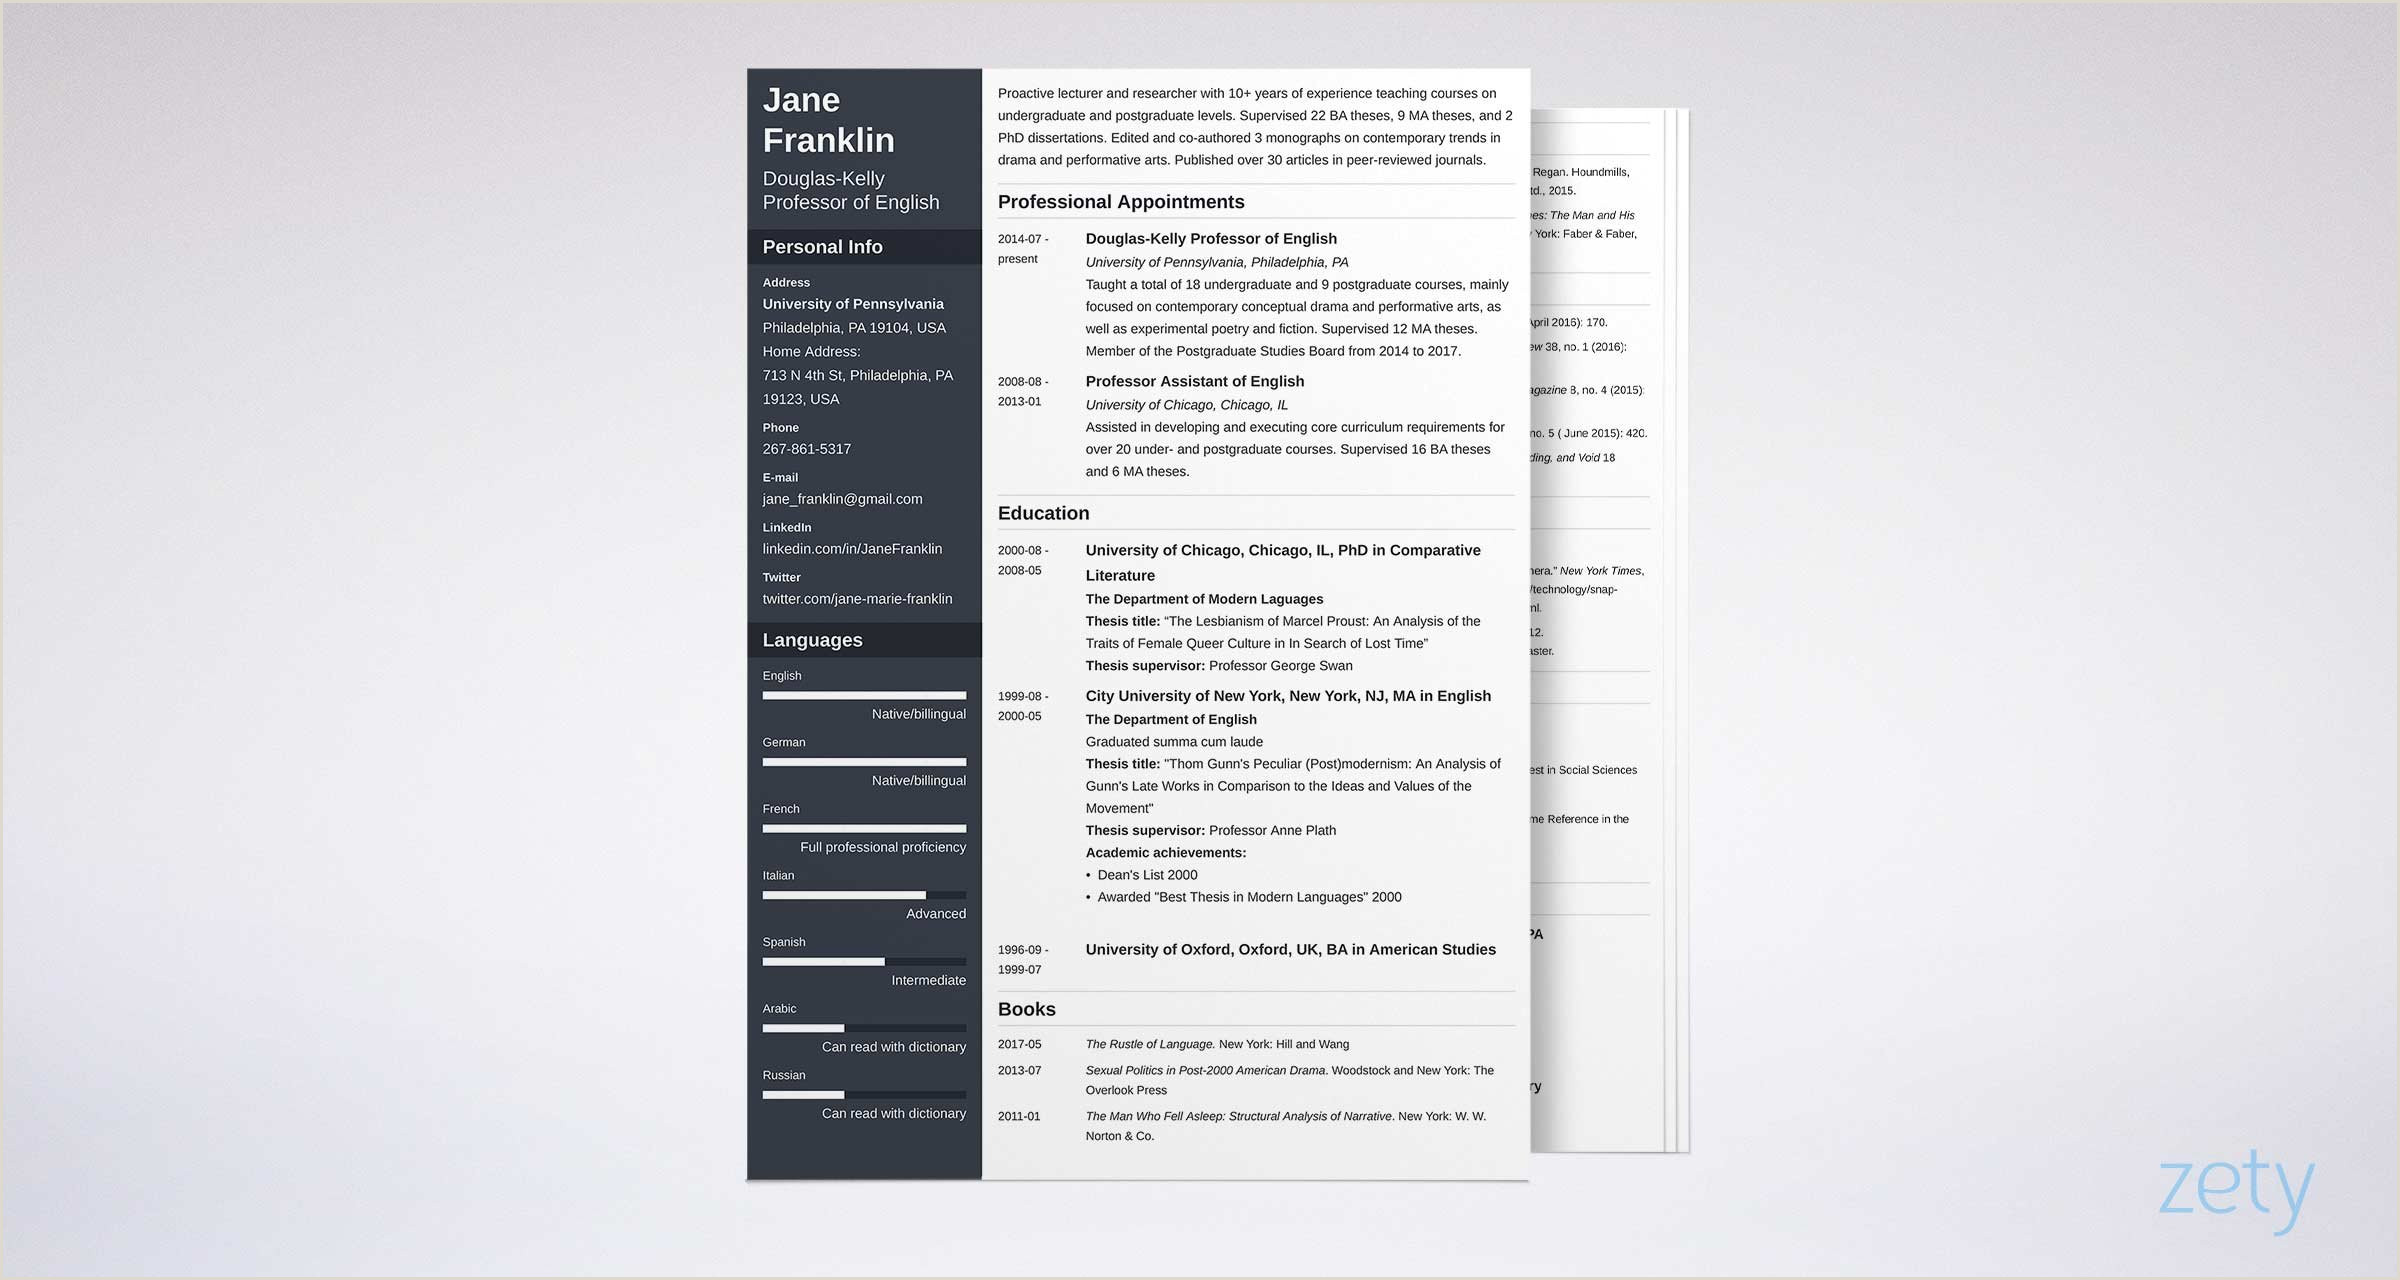 Cv Format For Job Editable Academic Cv Example Template & Writing Guide [with 20